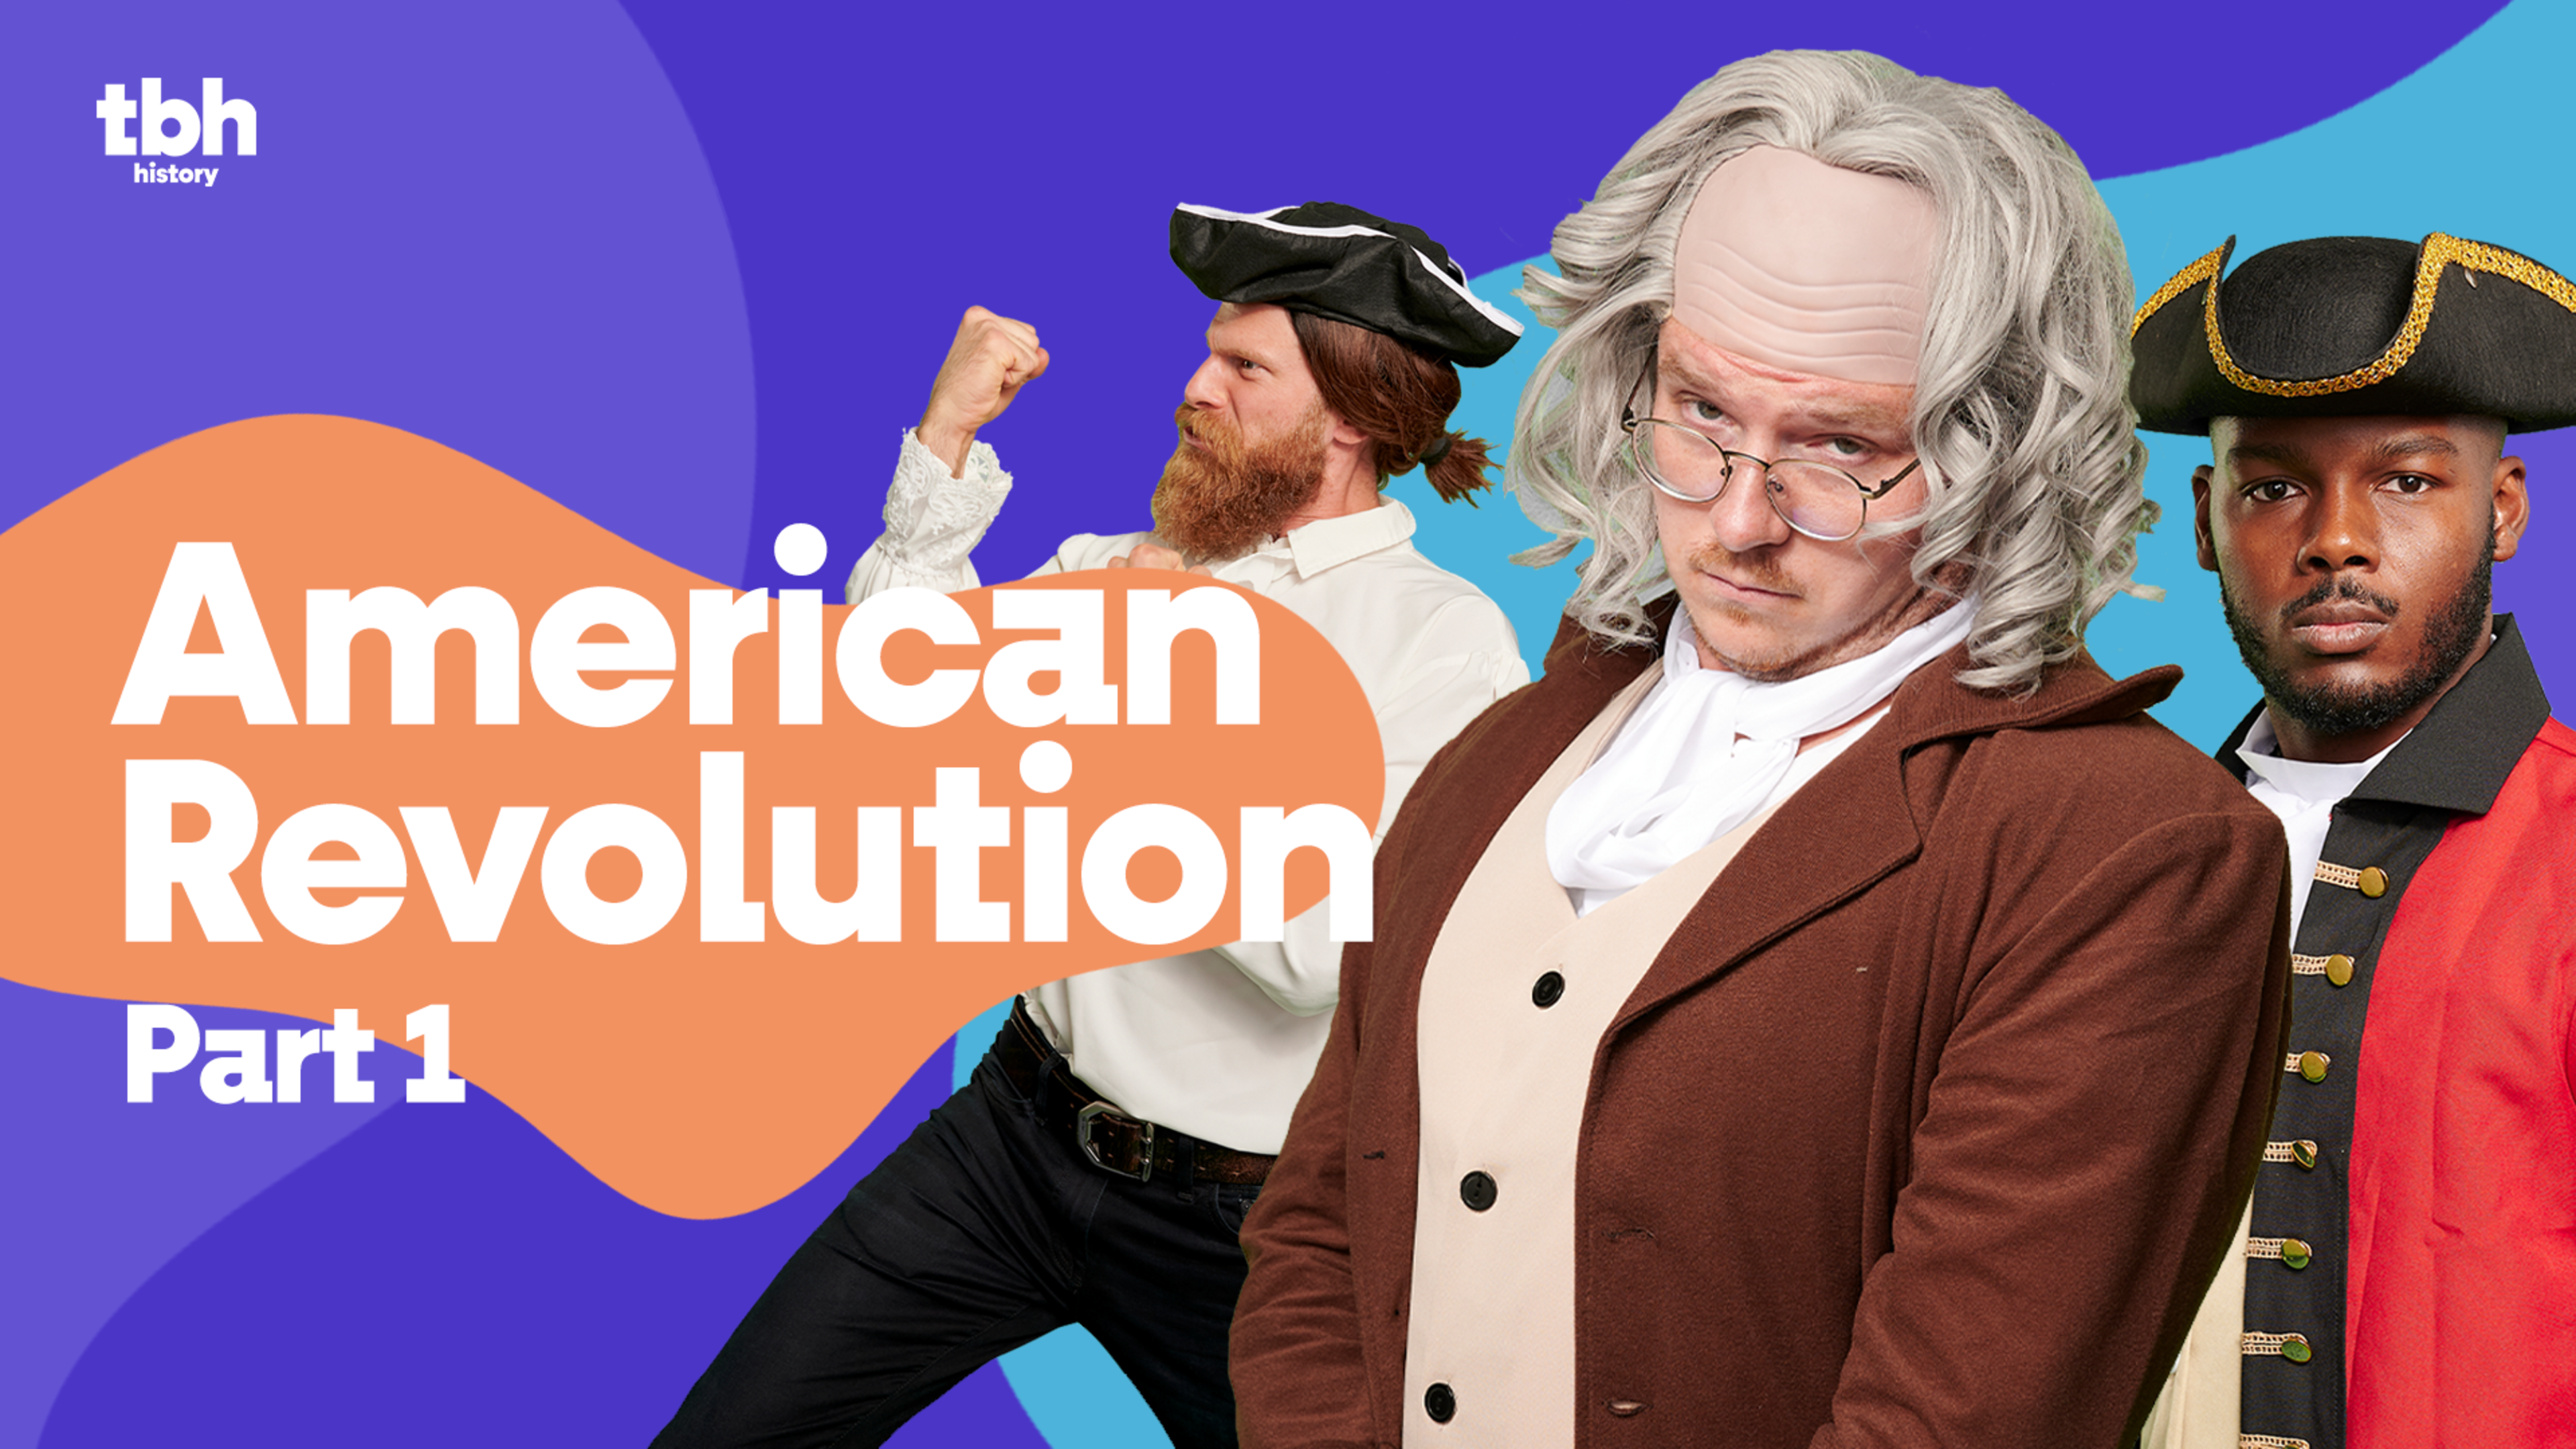 TBH History: American Revolution Part 1